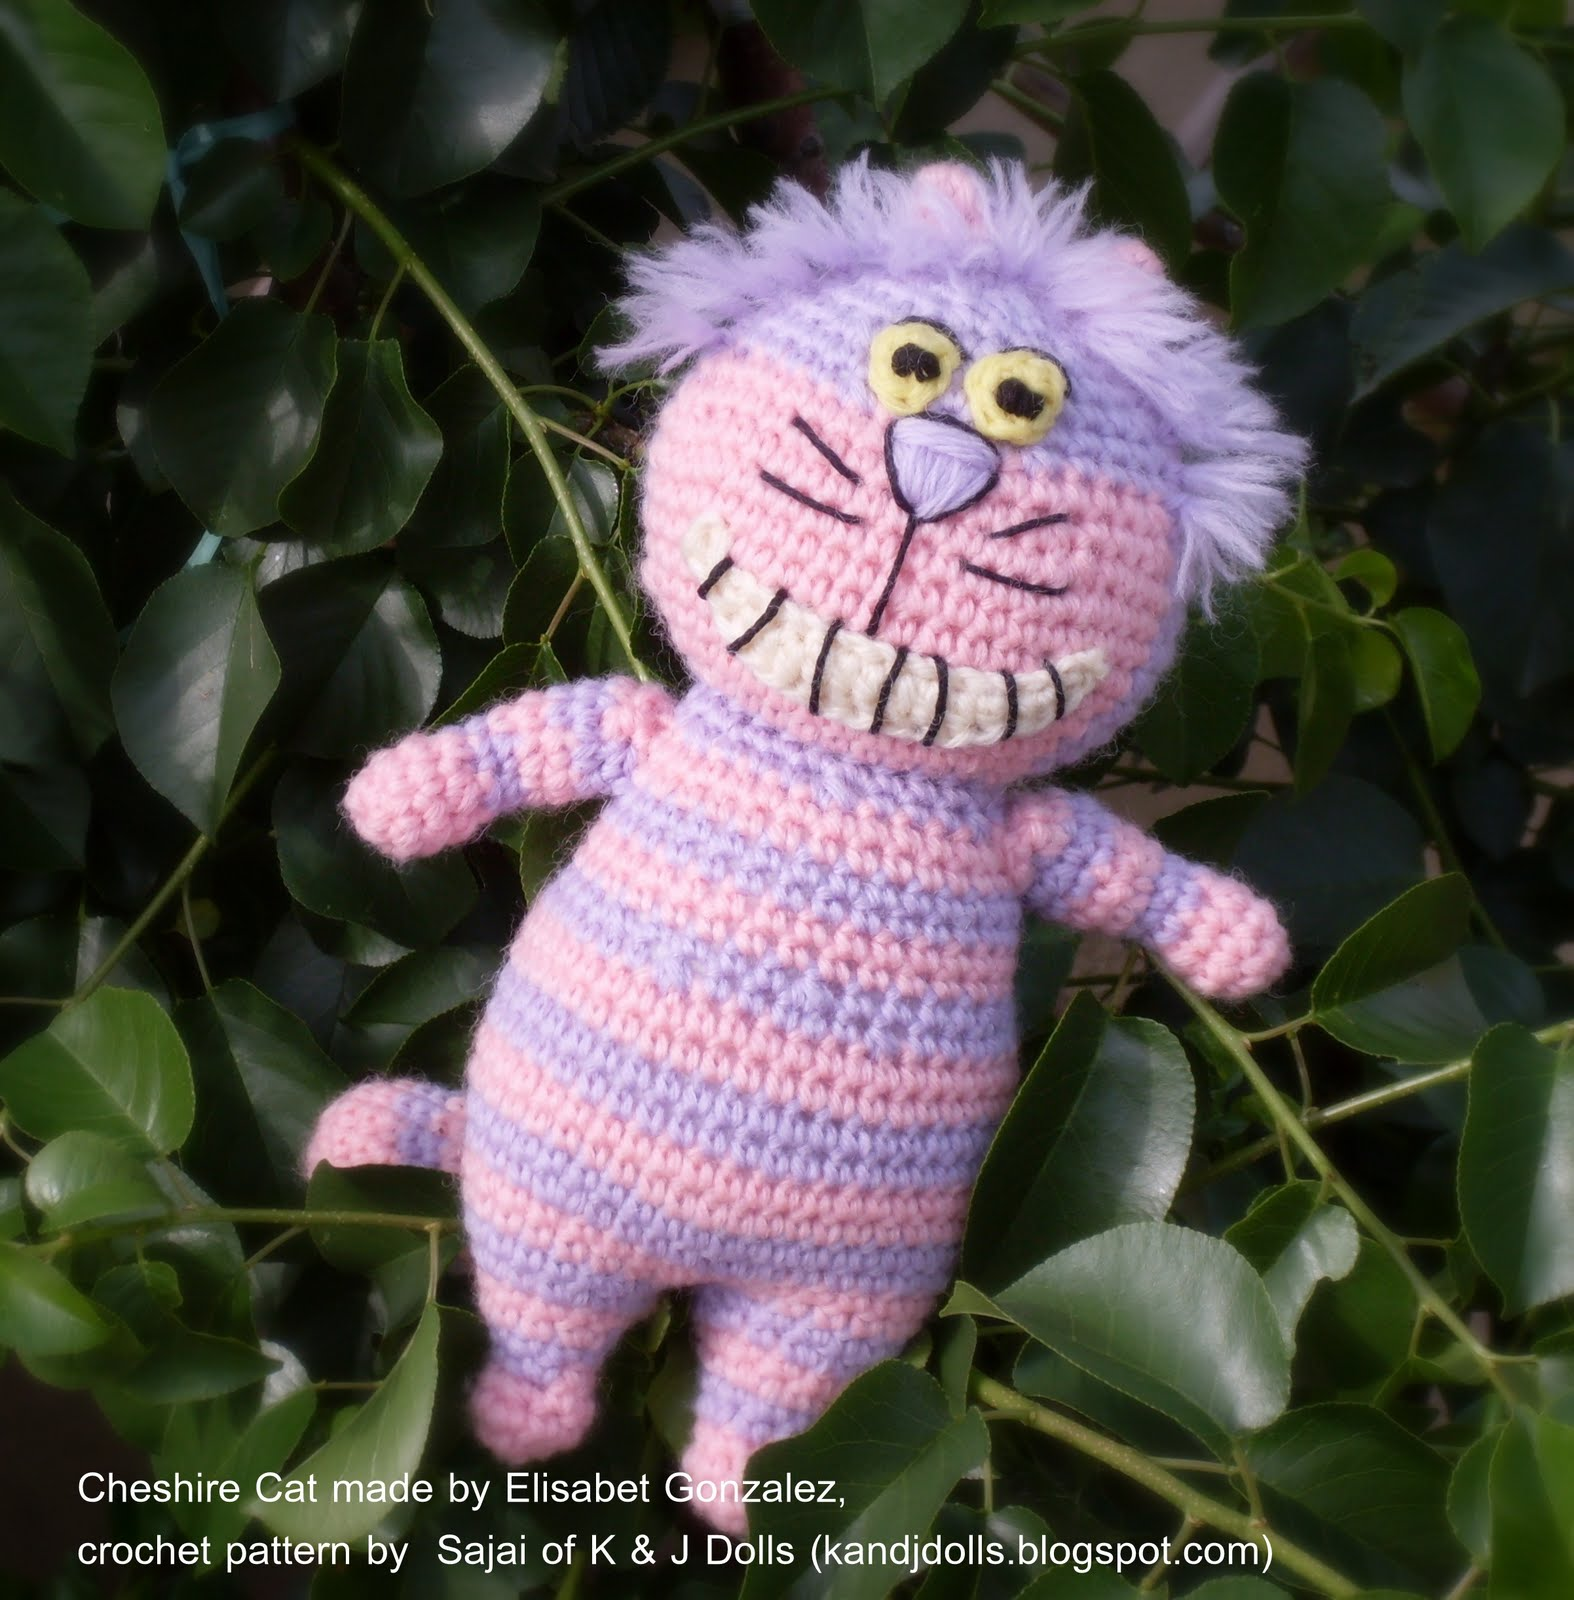 Cheshire Cat Amigurumi Crochet Pattern Free : Cheshire Cat - Sayjai Amigurumi Crochet Patterns ~ K and J ...